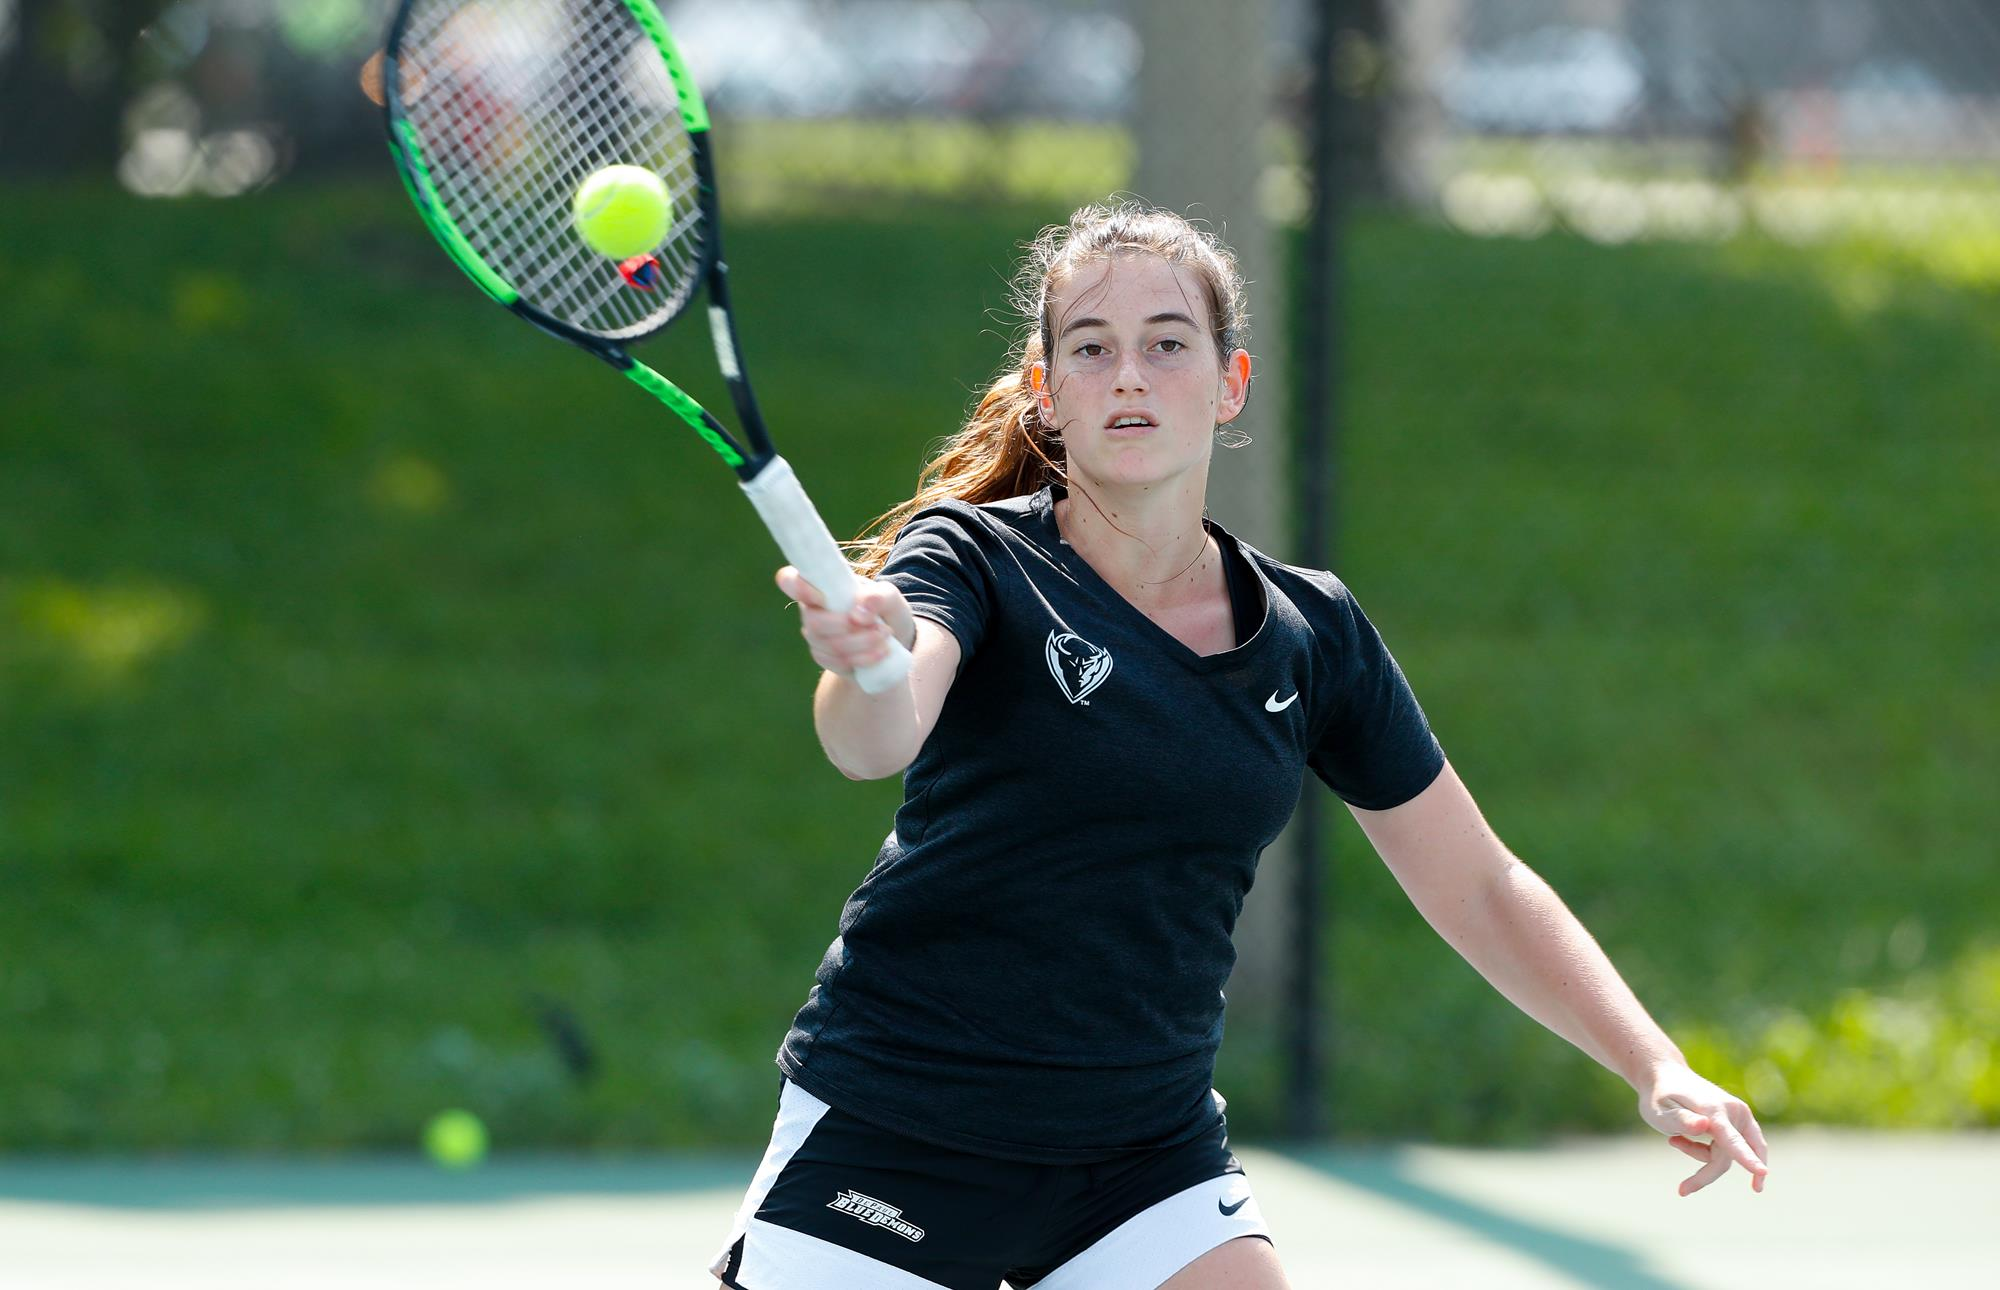 Avgeri Goes Undefeated at WMU Fall Invite